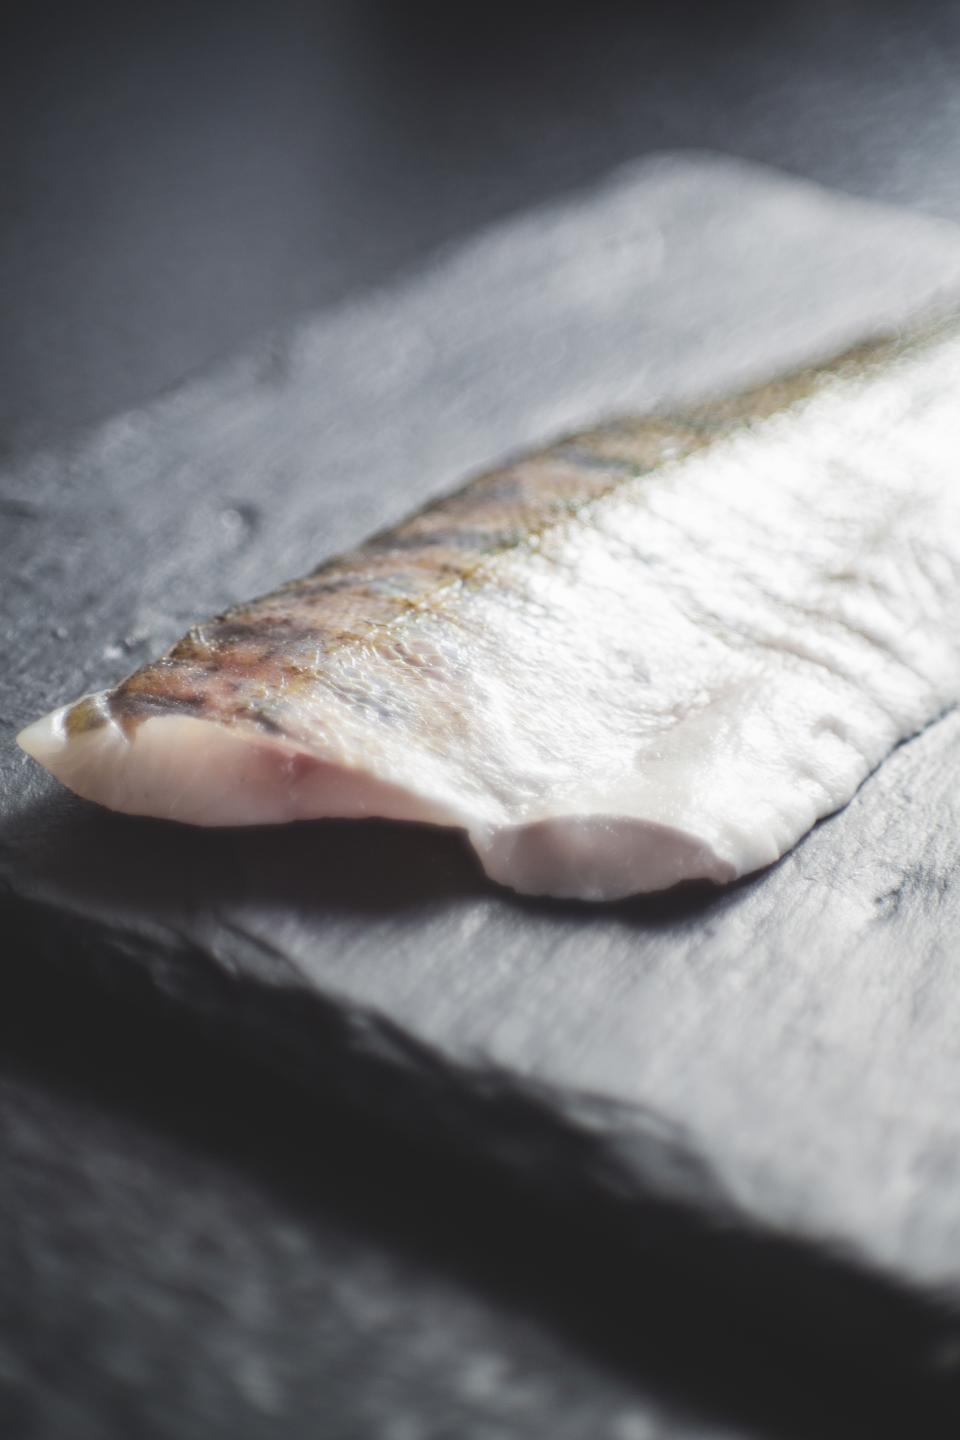 Free stock photo of meat fish